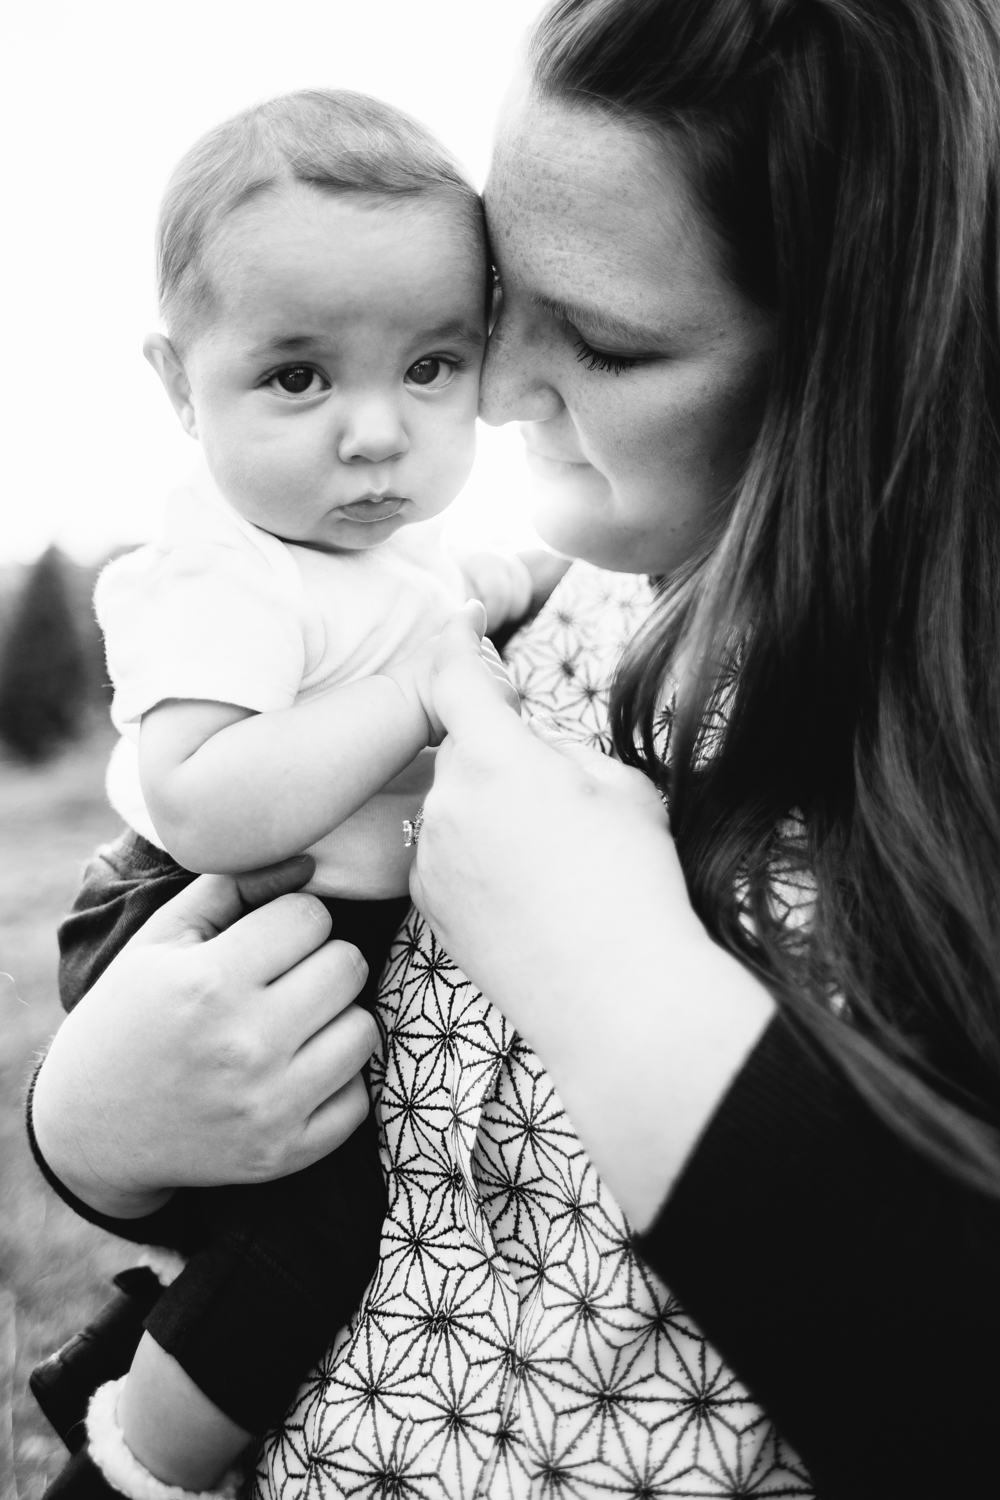 mary-colleen-photography-madison-alabama-family-newborn-lifestyle-photographer0044.jpg